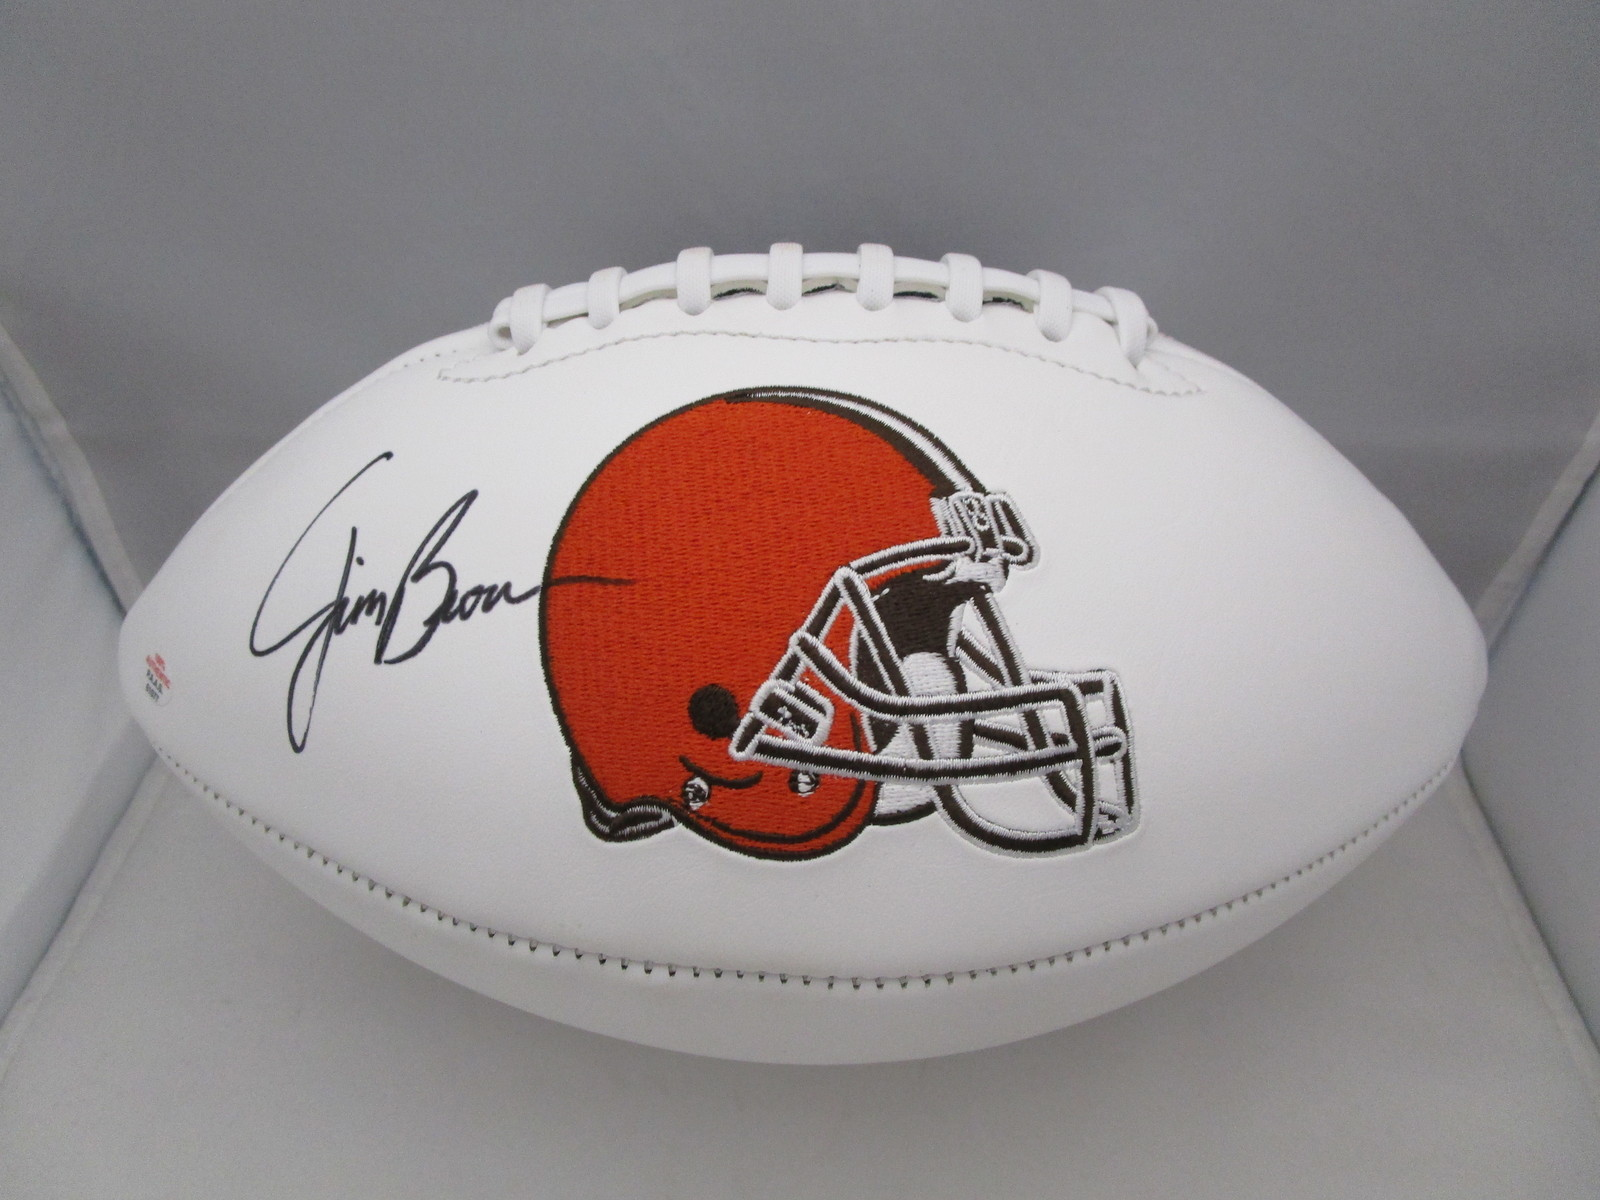 JIM BROWN / NFL HALL OF FAME / AUTOGRAPHED CLEVELAND BROWNS WHITE FOOTBALL / COA - $118.75